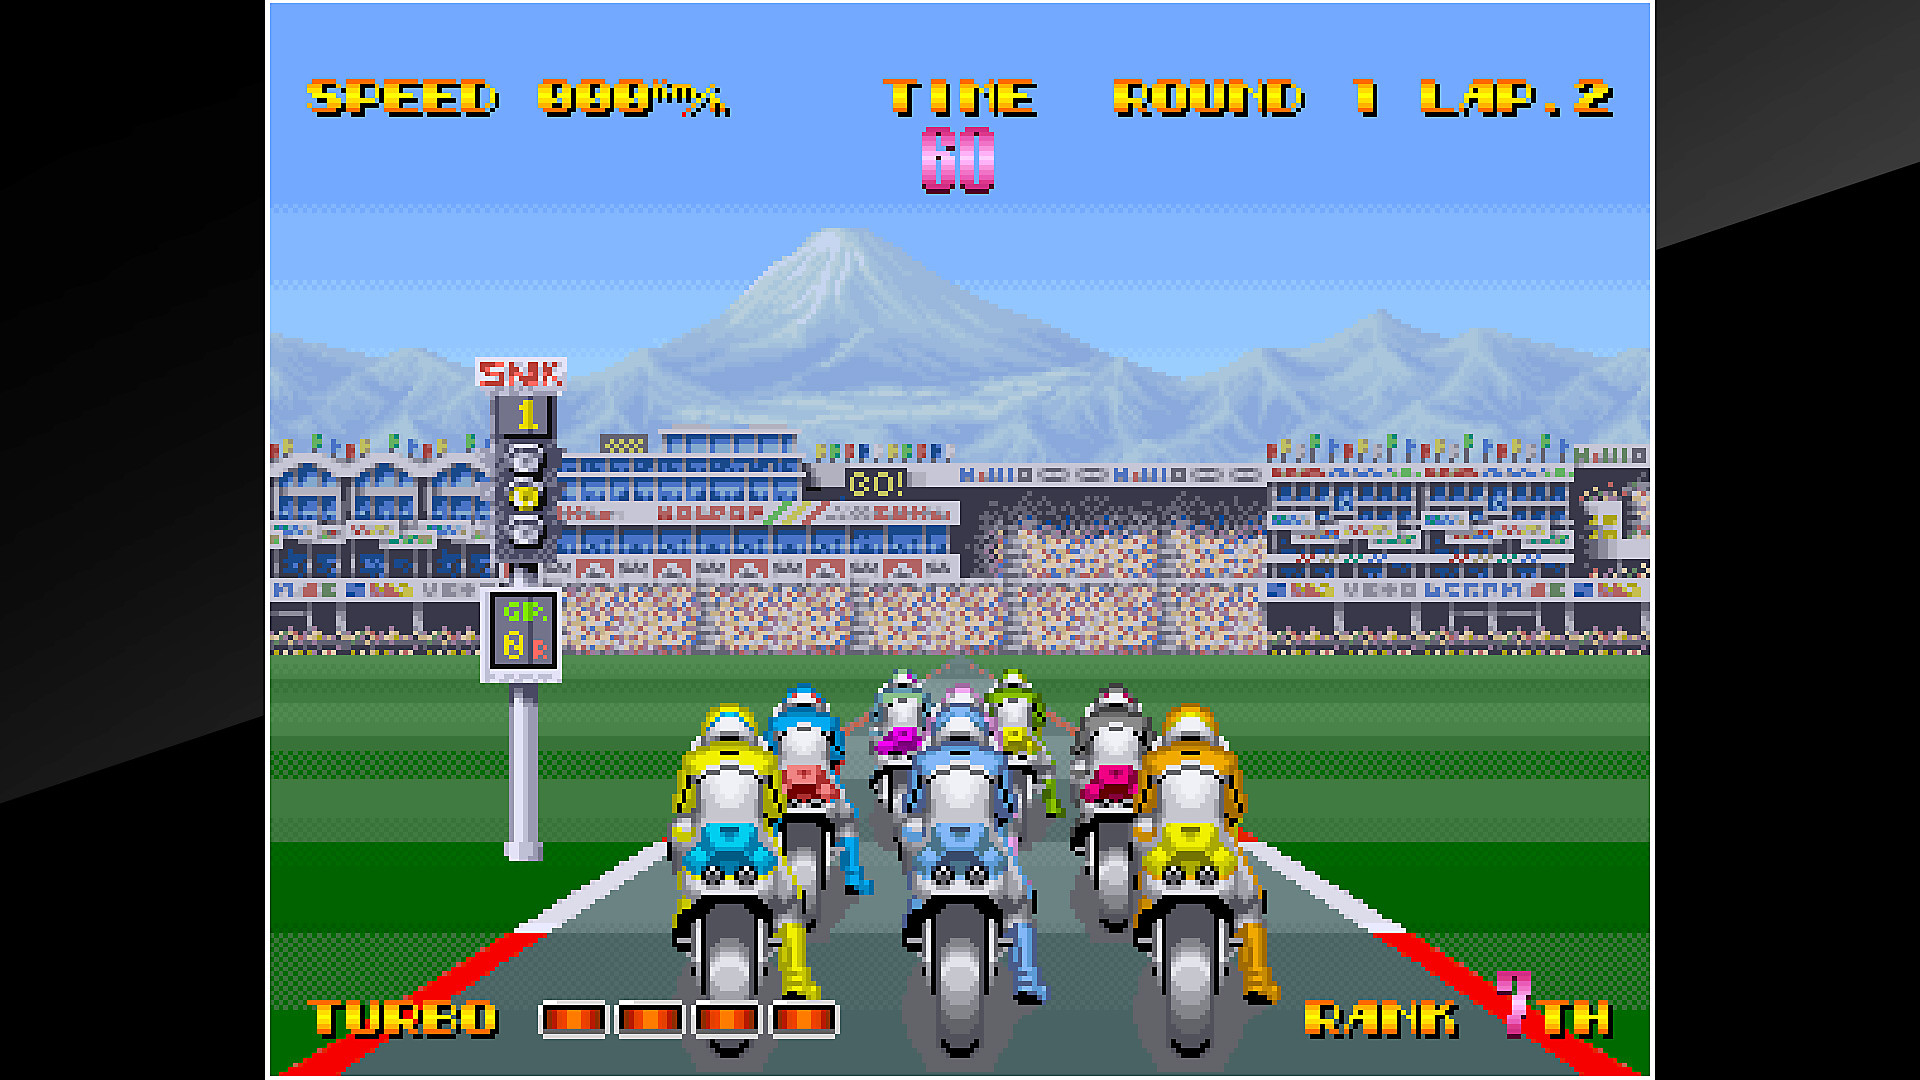 Écran de jeu d'ACA NEOGEO RIDING HERO